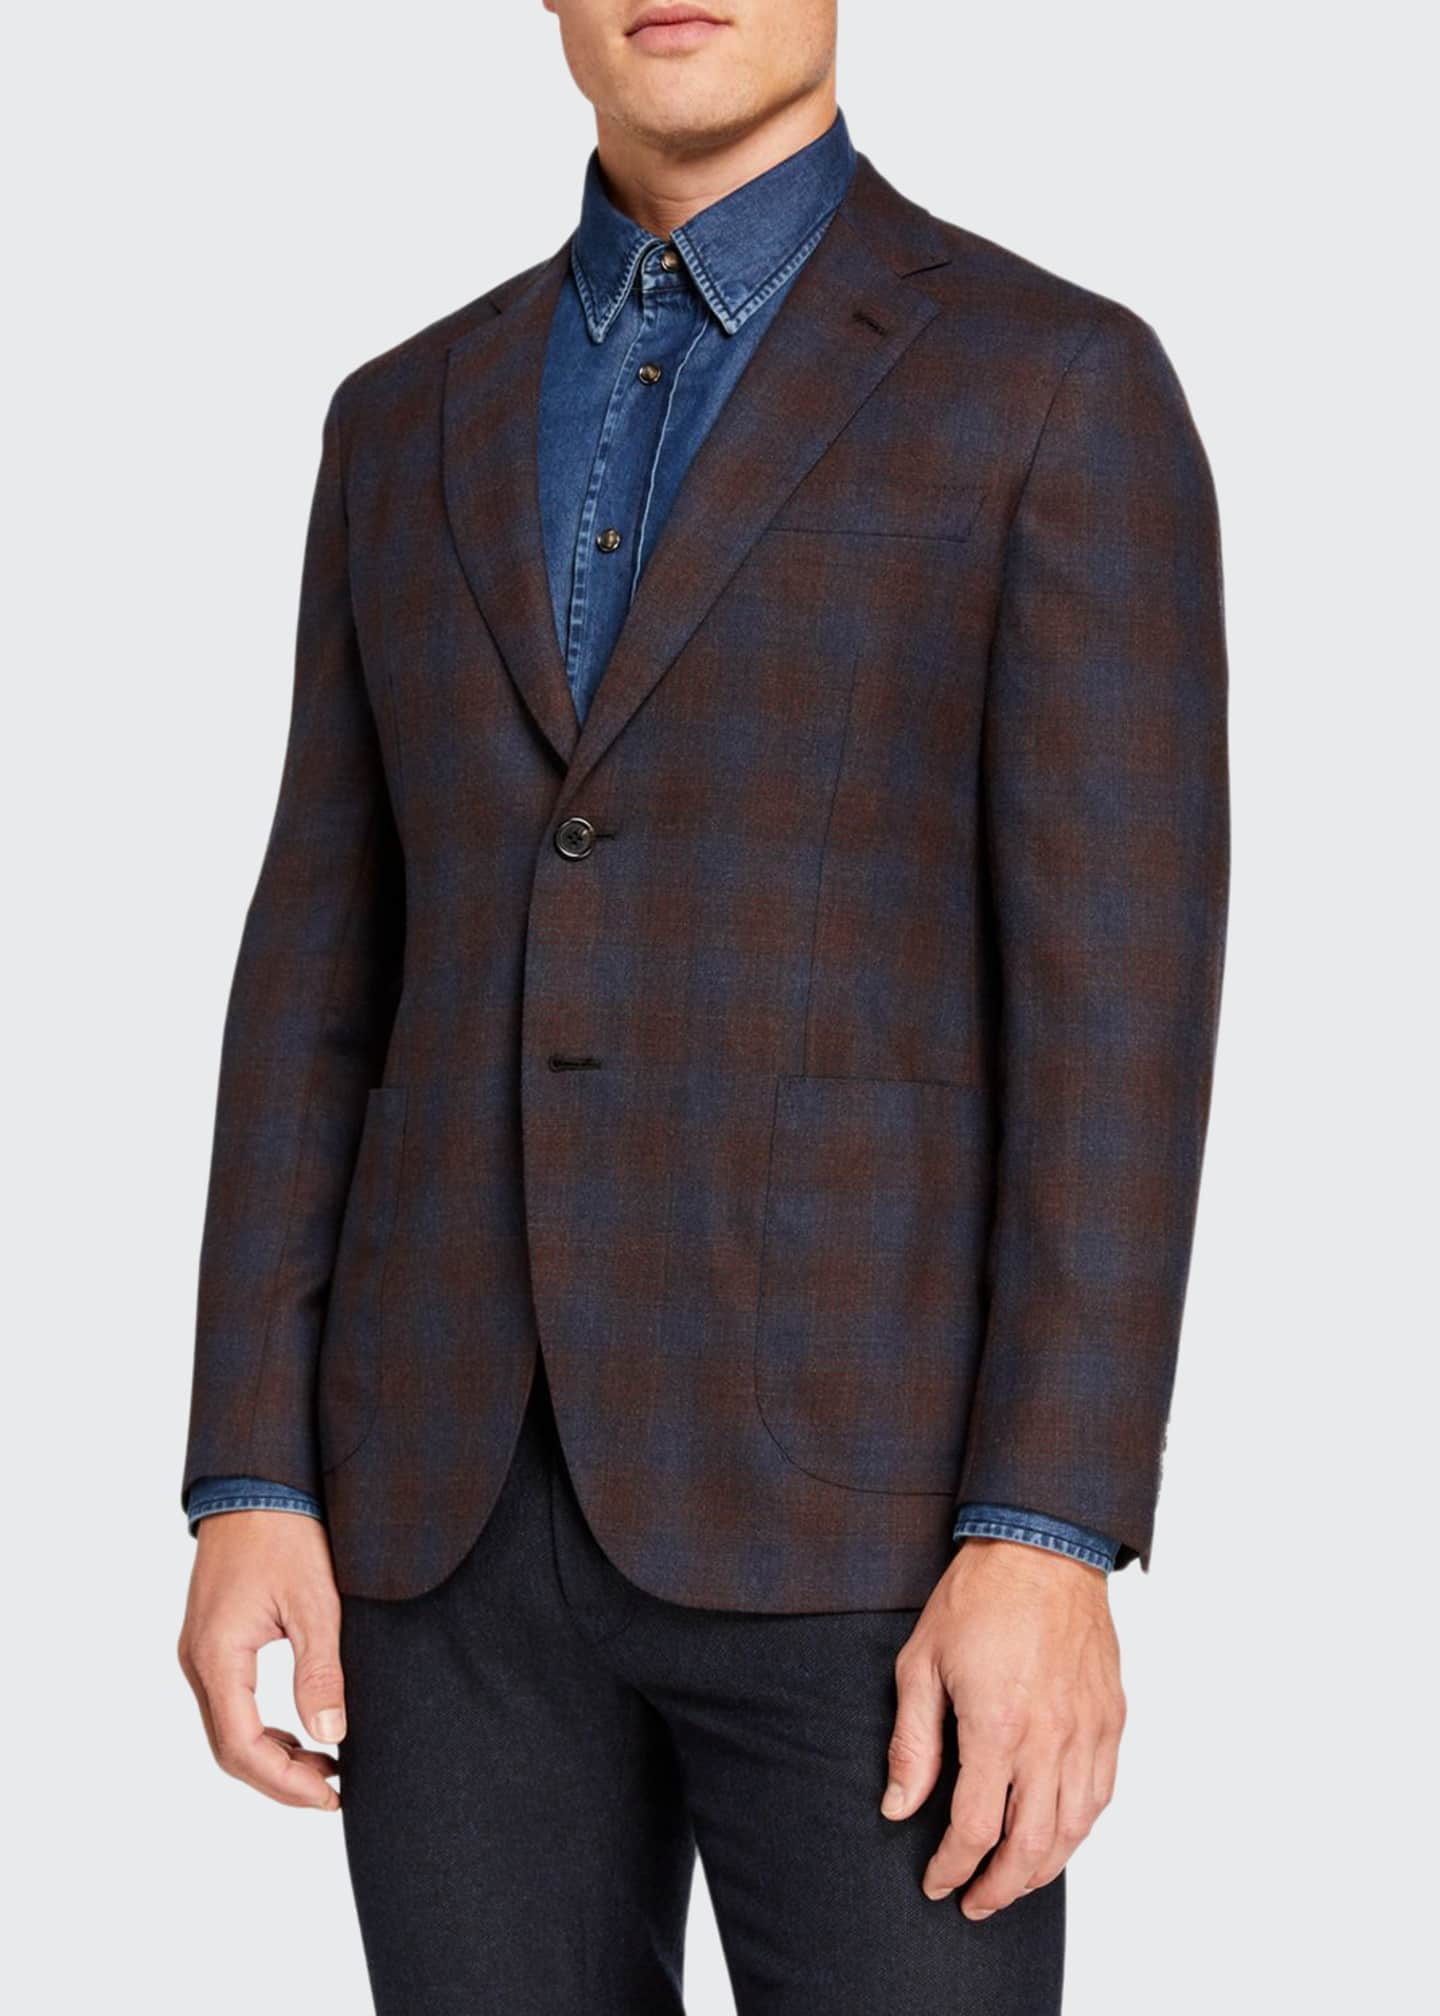 Brioni Men's Ombre-Check Two-Button Jacket